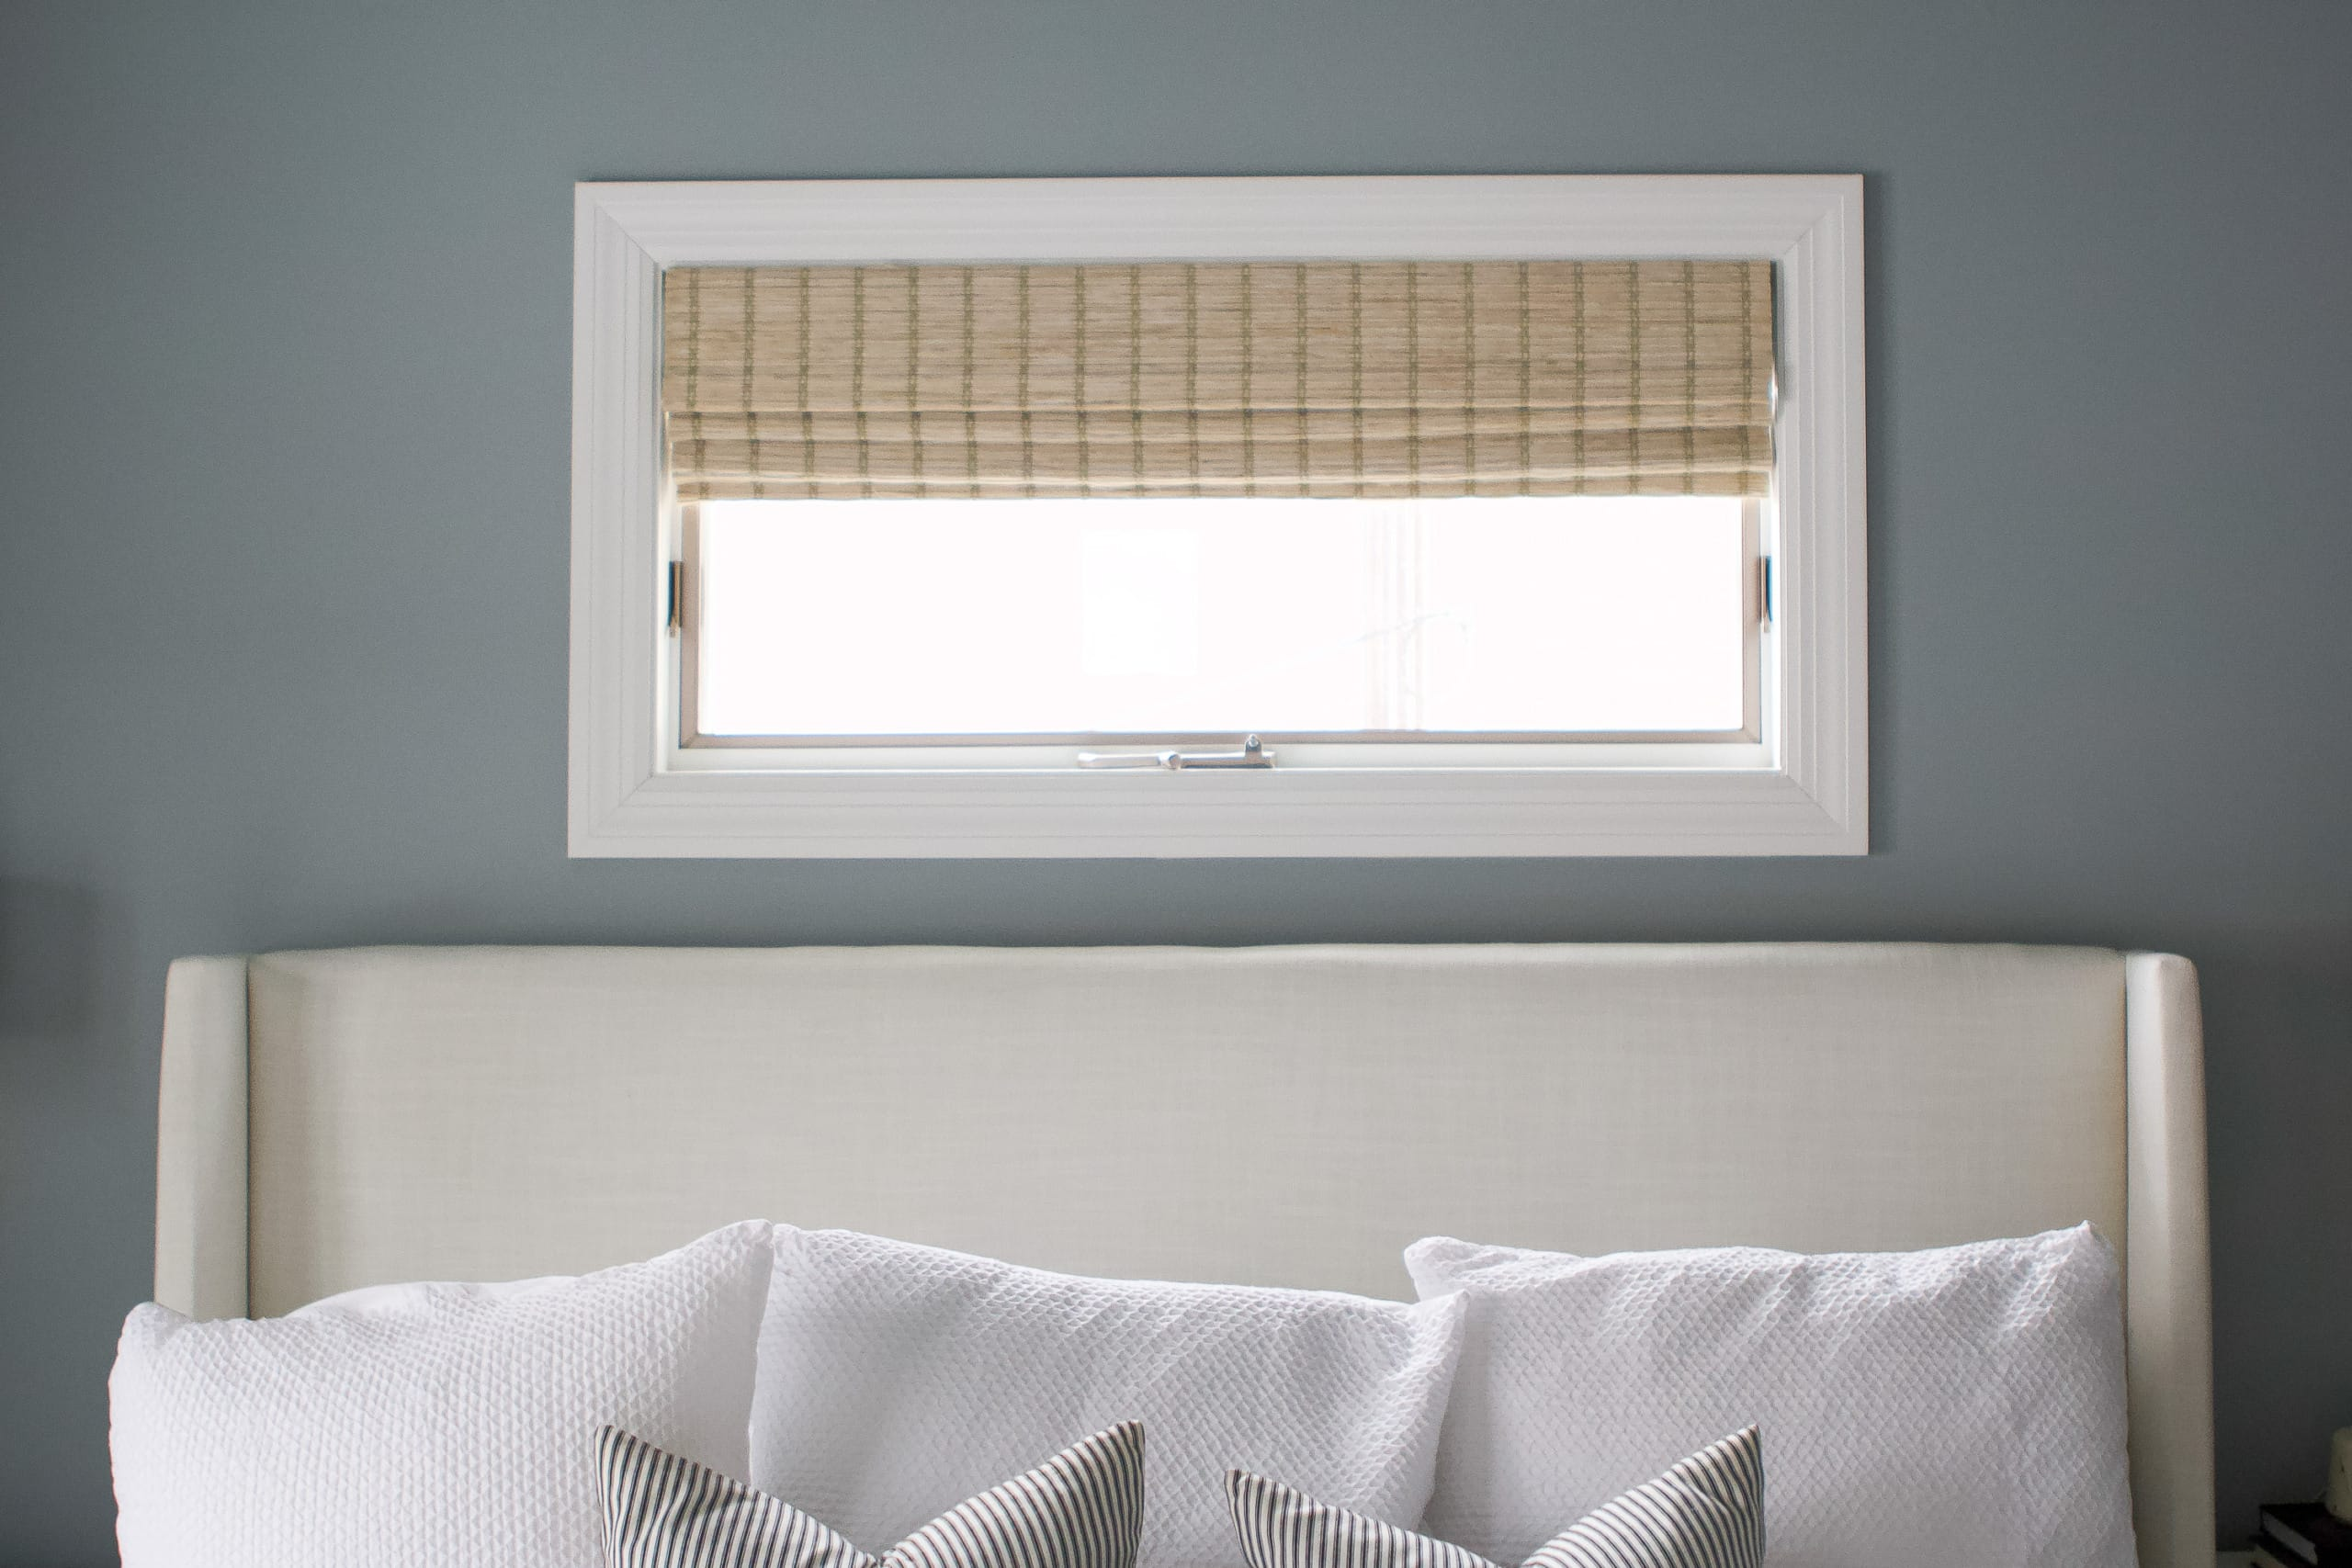 Do we need replacement windows?